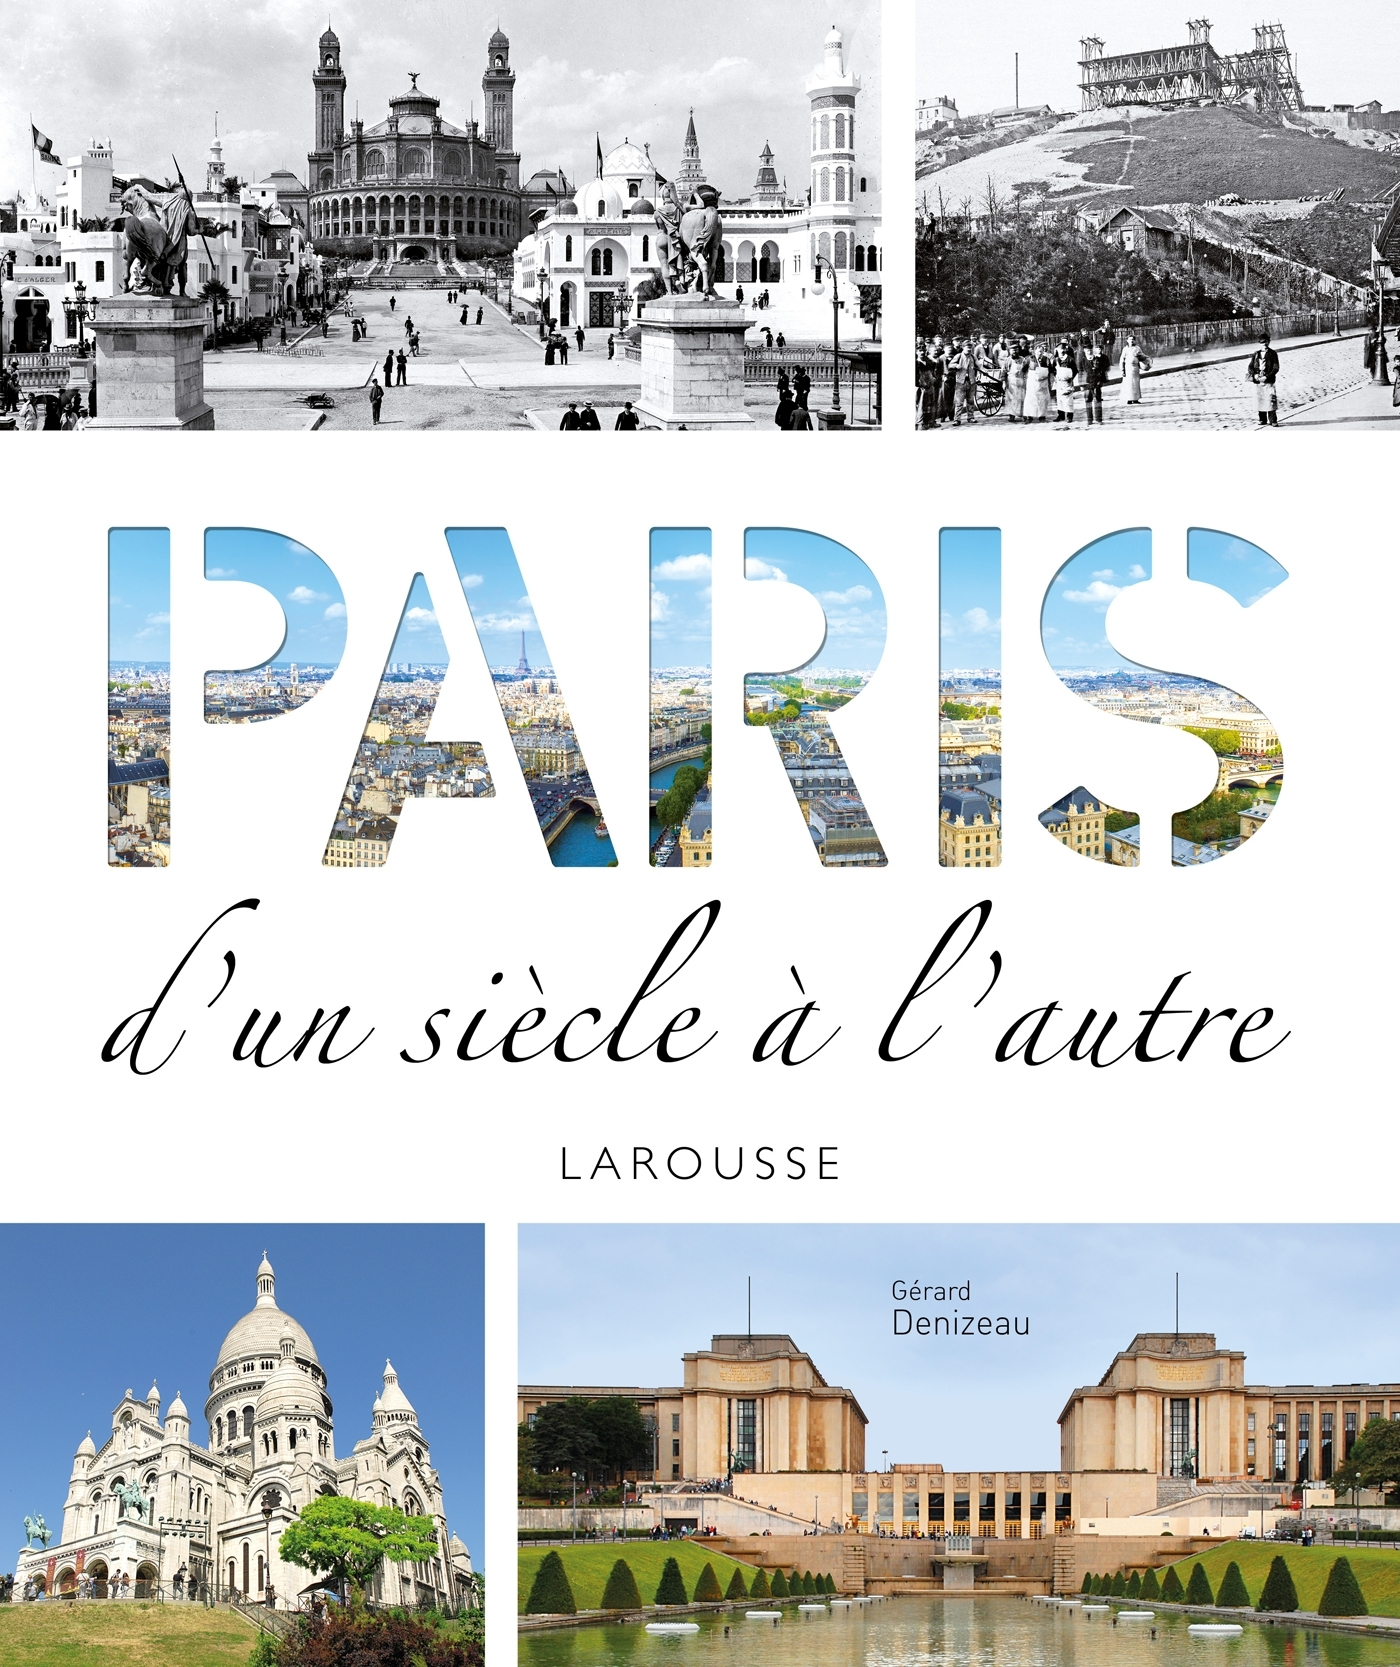 PARIS D'UN SIECLE A L'AUTRE